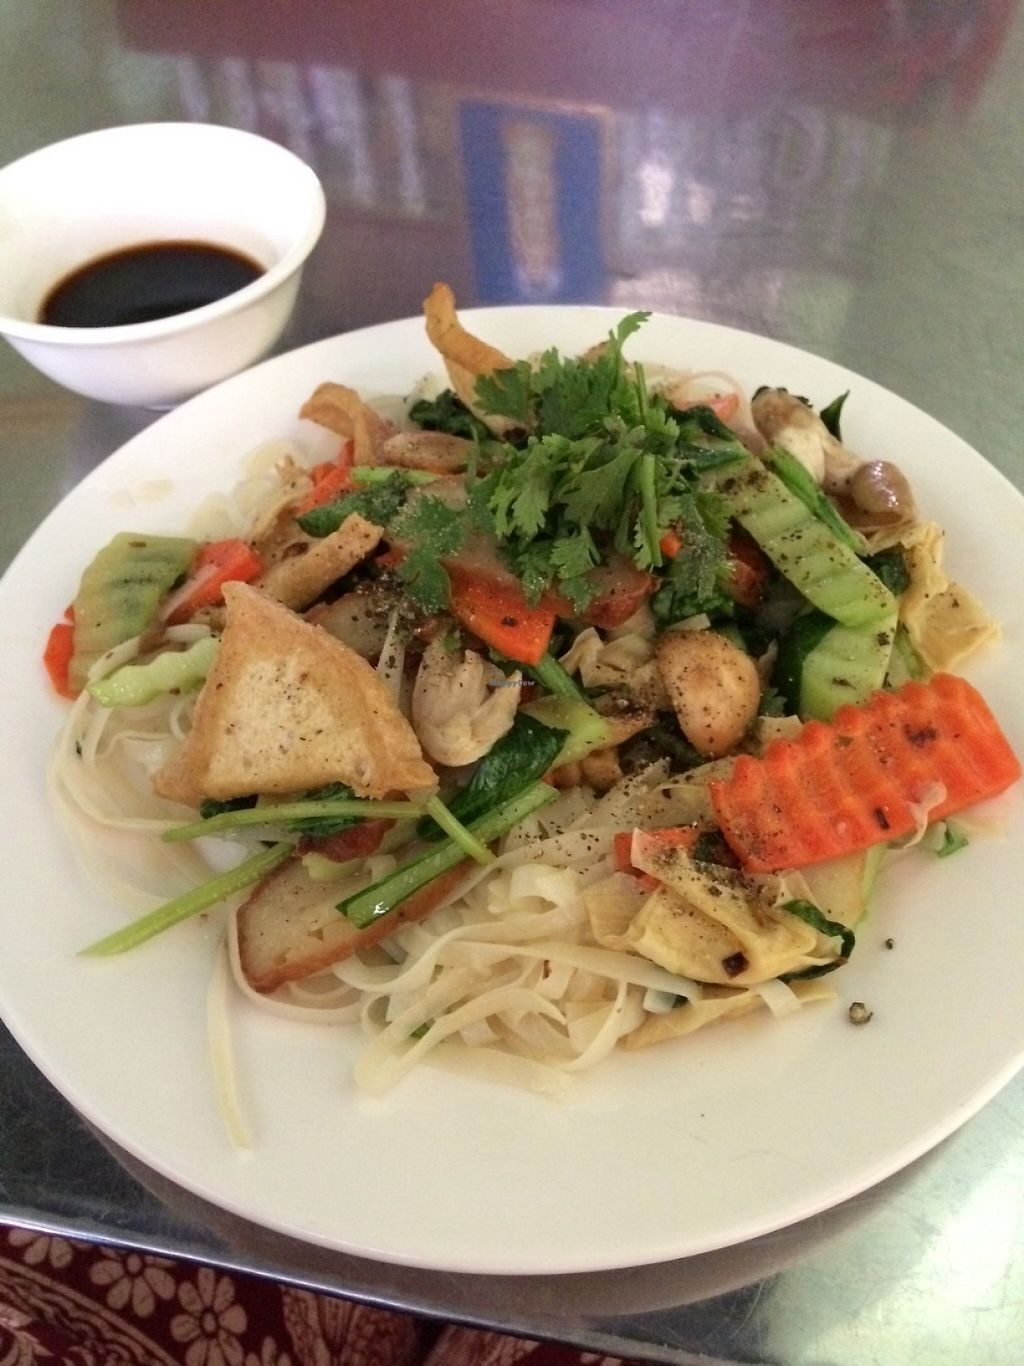 """Photo of Quan Chay  by <a href=""""/members/profile/Cyclinggal"""">Cyclinggal</a> <br/>Stir fried pho <br/> May 15, 2017  - <a href='/contact/abuse/image/86037/258955'>Report</a>"""